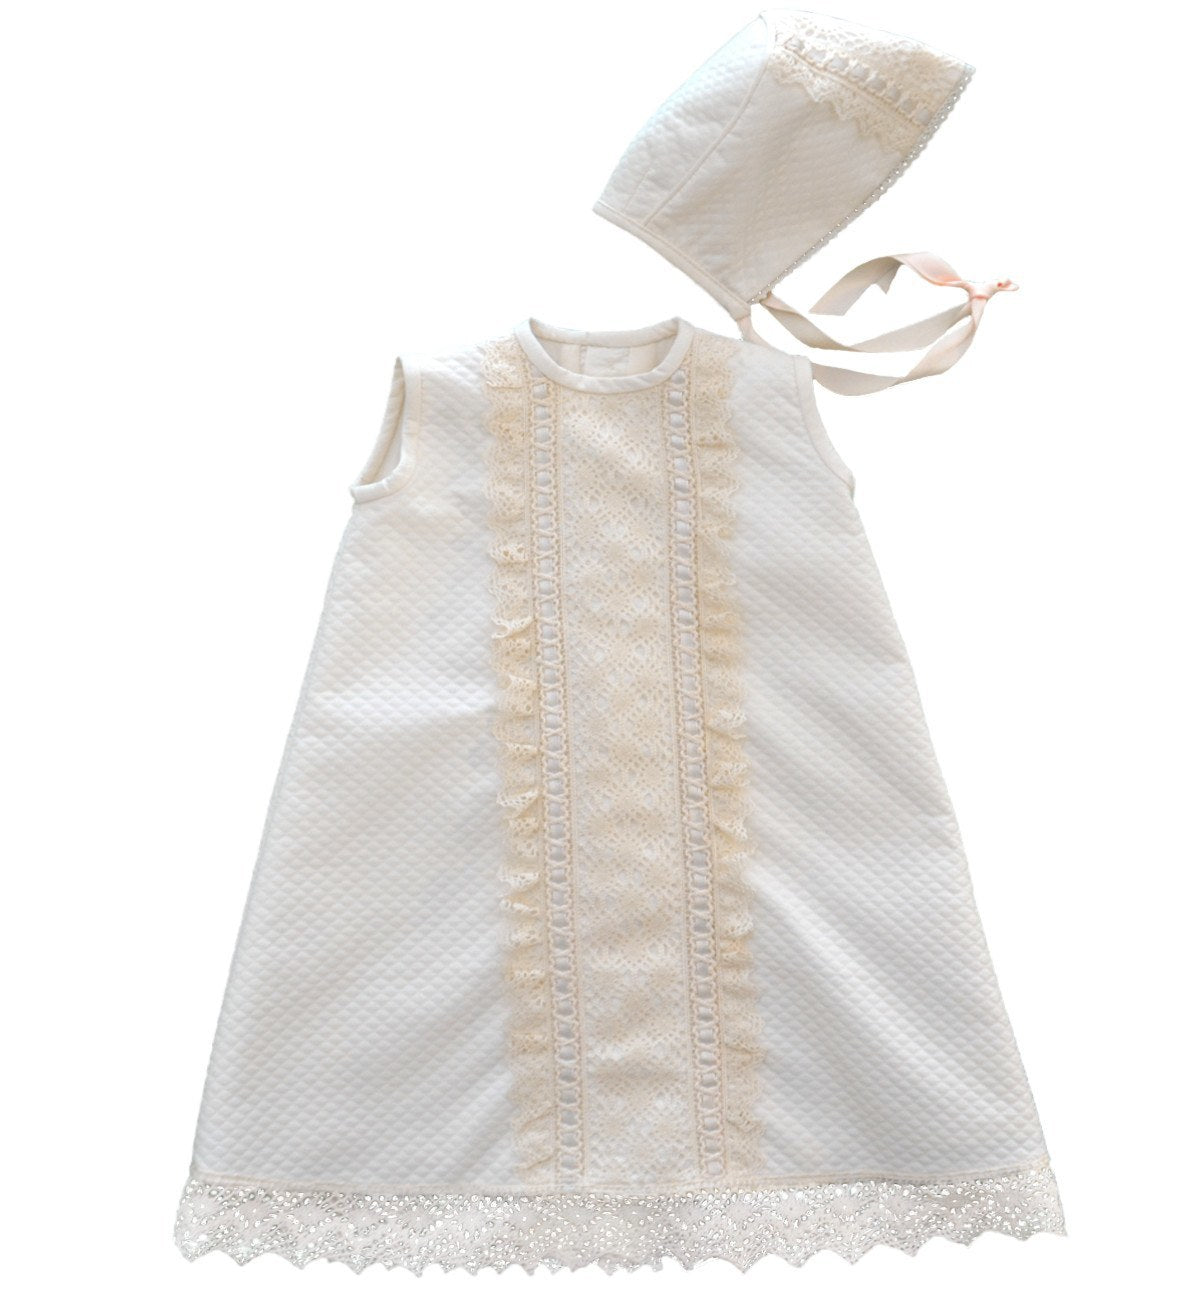 Spanish baby clothes | baby Christening dress | Christening dress & bonnet set (baby girl) |babymaC  - 1